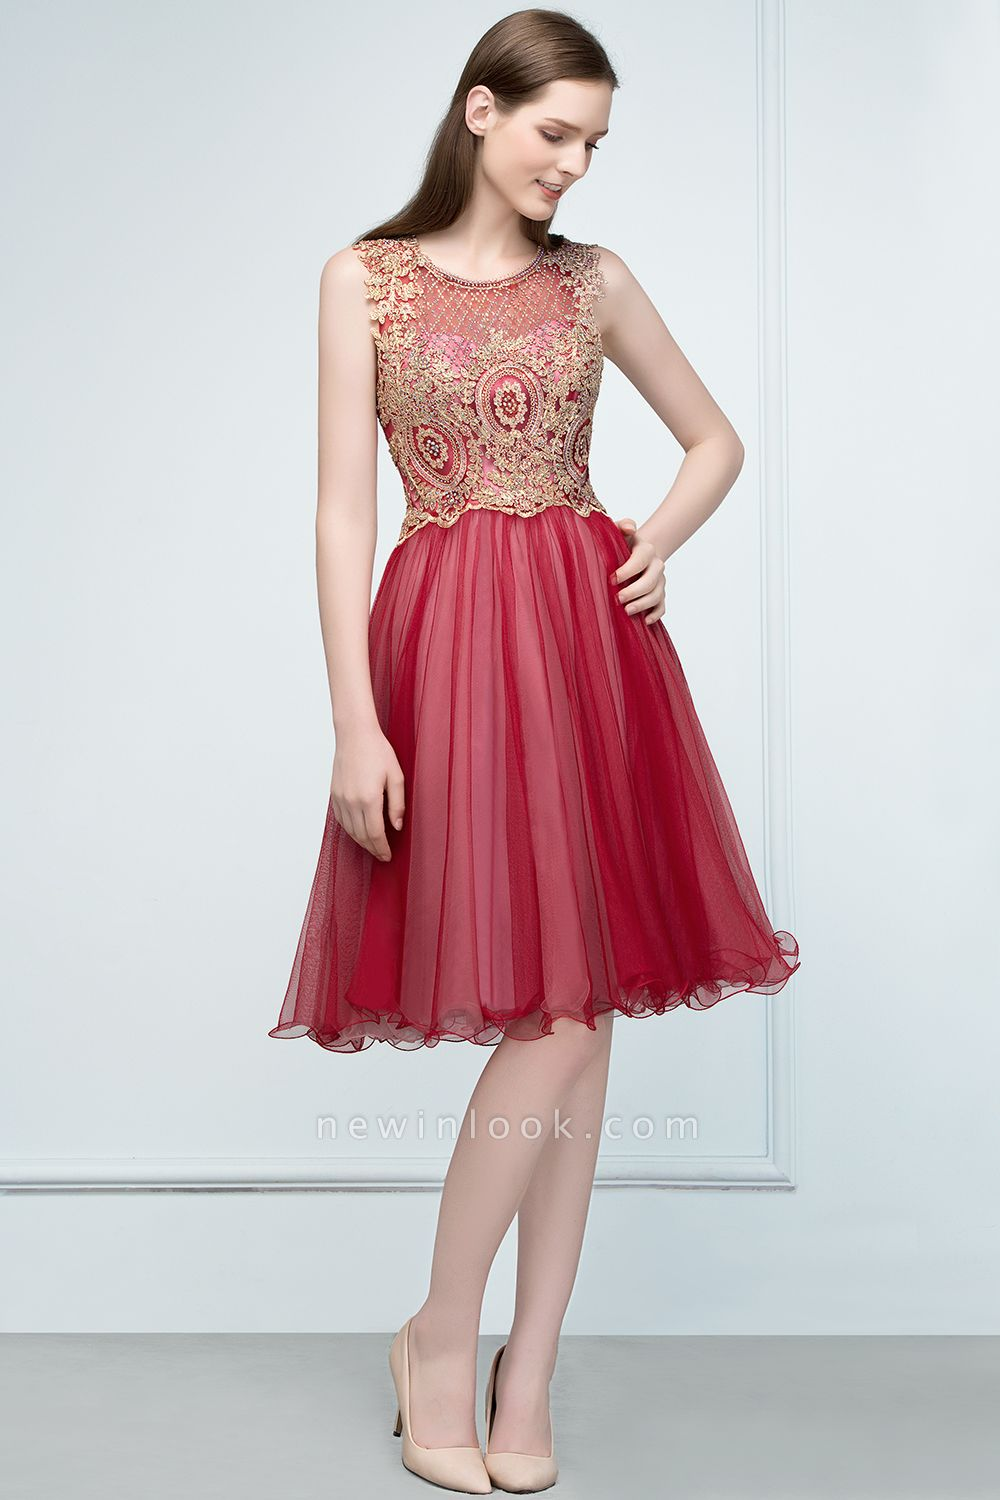 RITA | Quinceanera Sleeveless Knee Length Appliques Tulle Dama Dresses with Beads